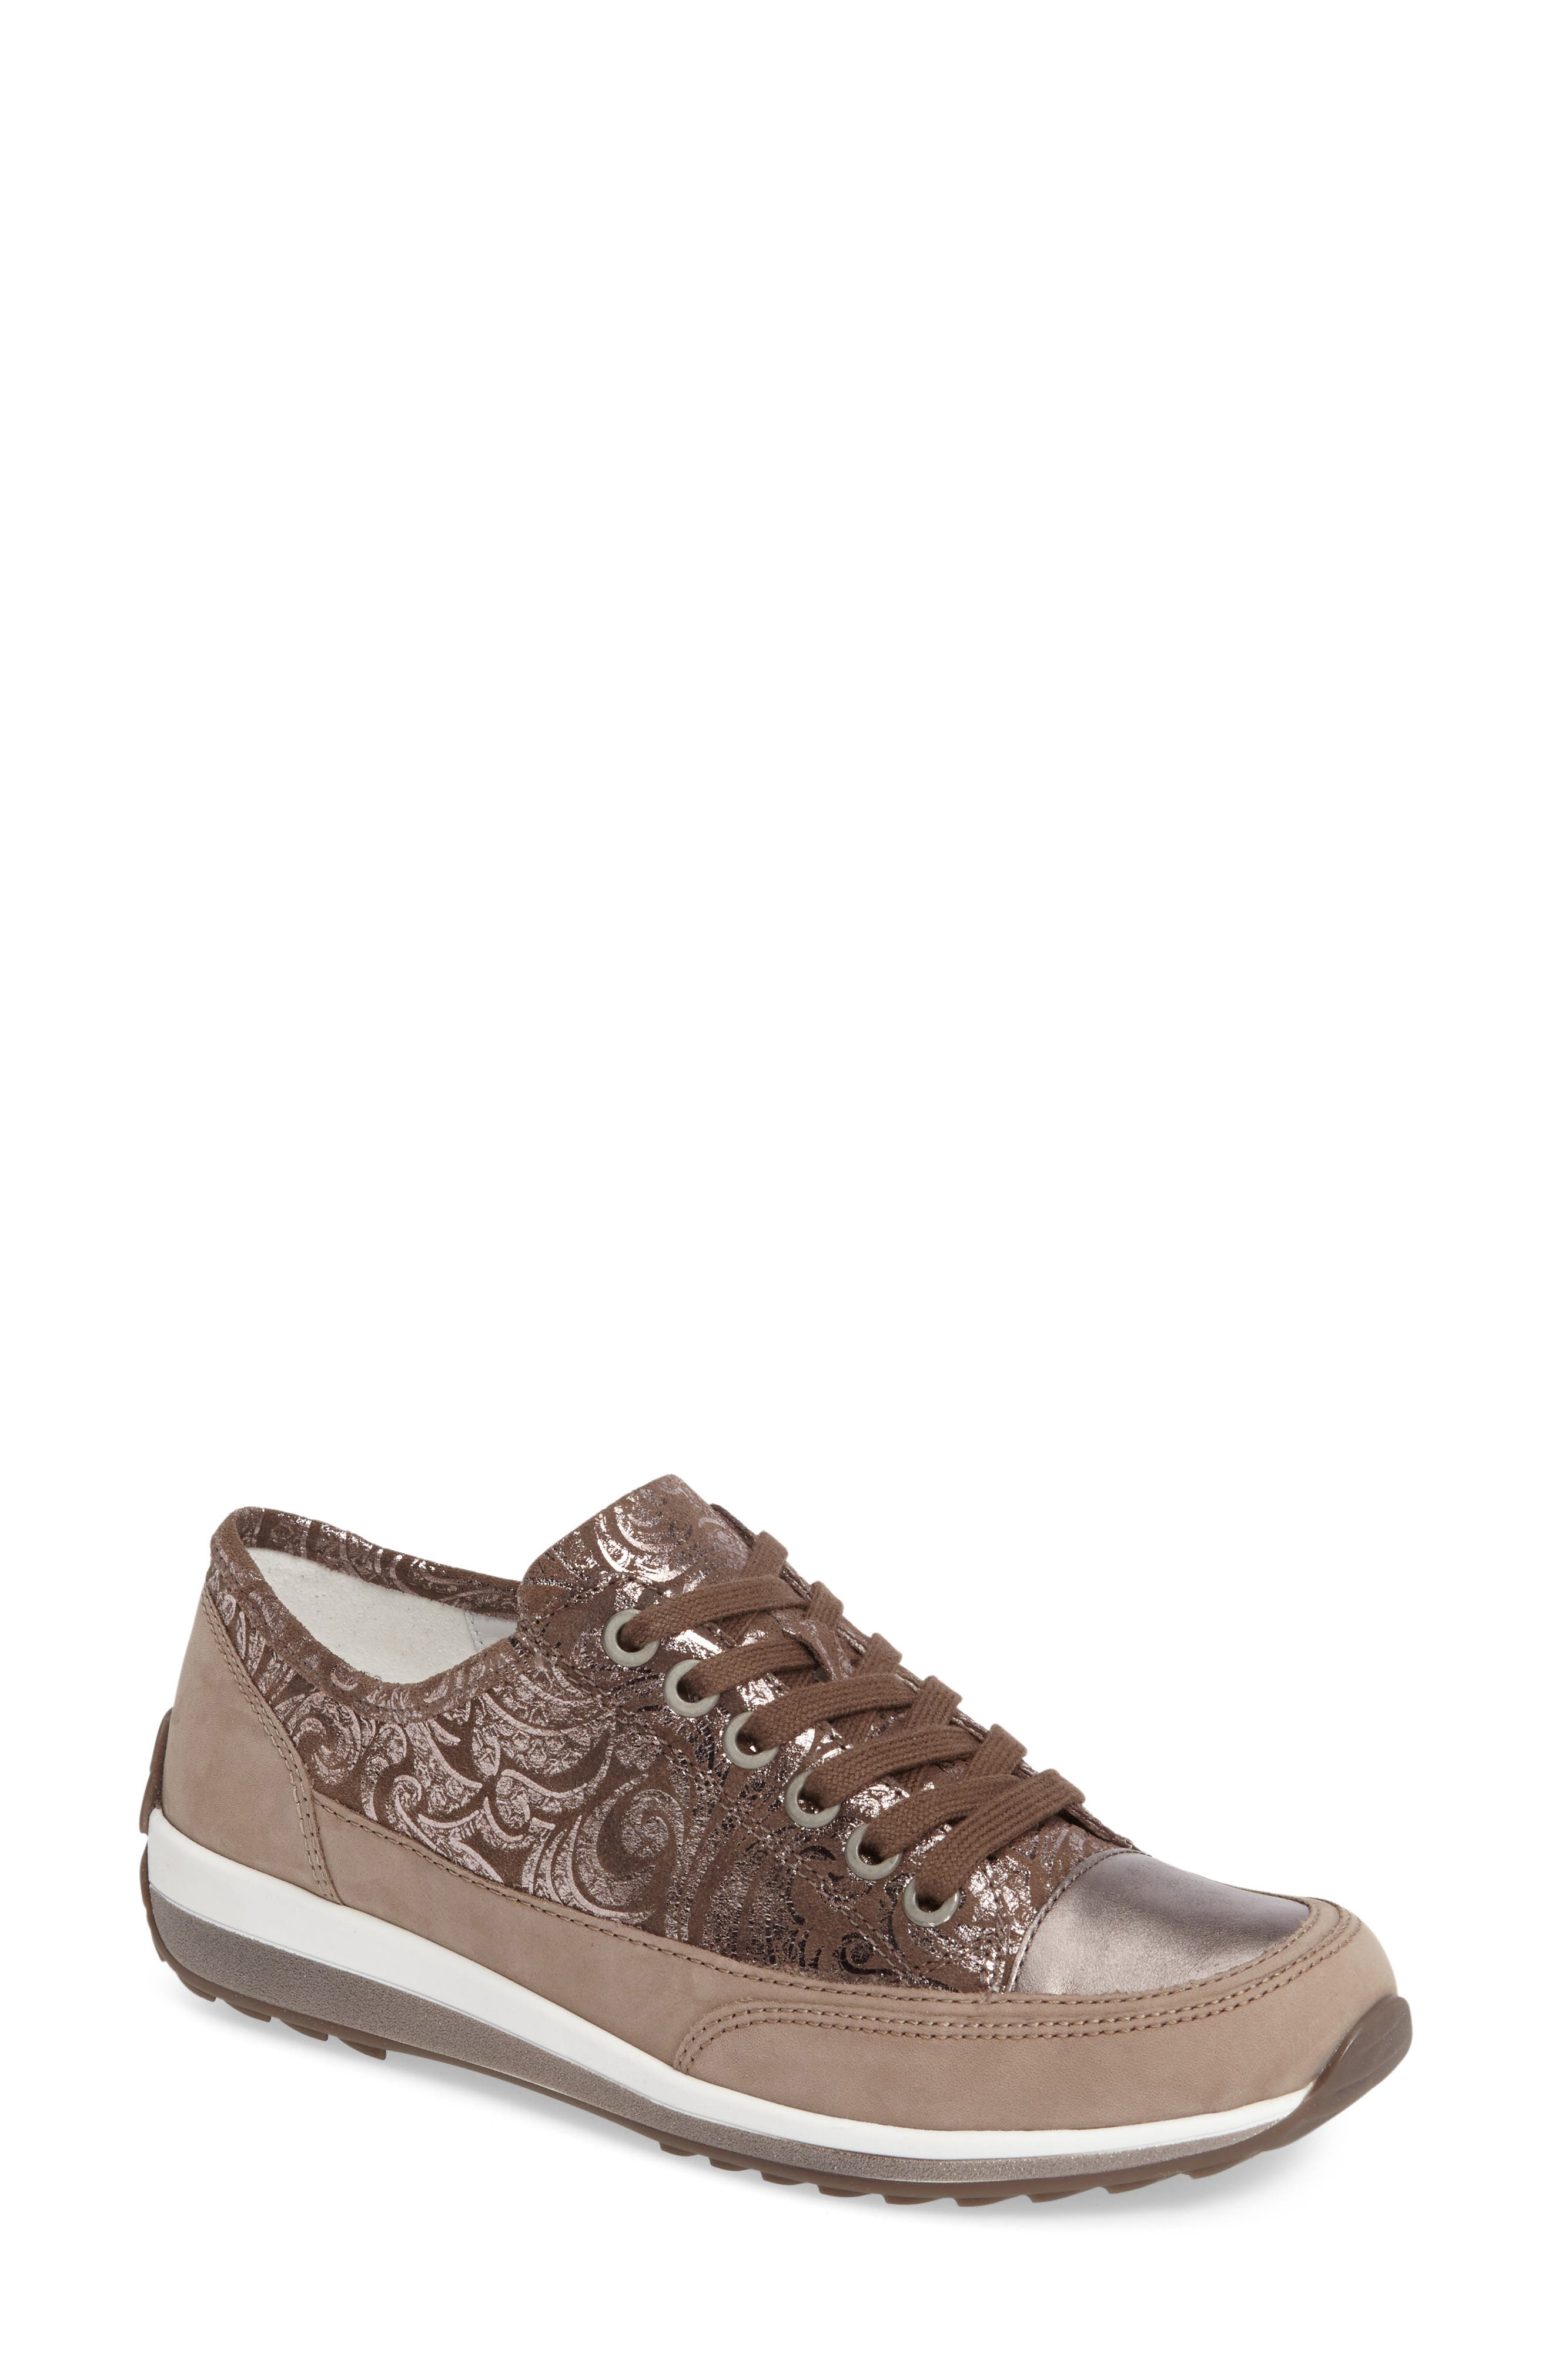 Hermione Sneaker,                             Main thumbnail 1, color,                             TAUPE COMBO LEATHER